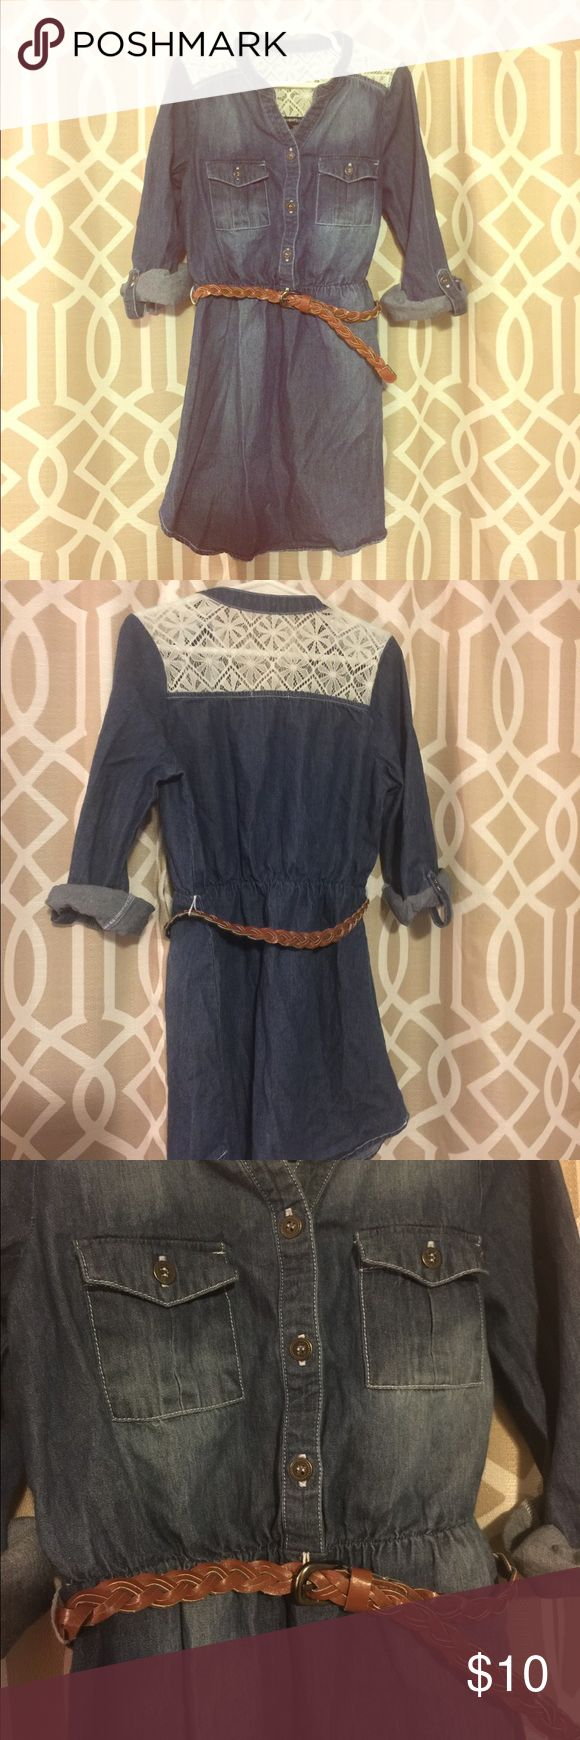 🐎Girls Jean Shirt dress🎀 Super cool Jean and lace shirt dress. Worn once. Braided faux leather belt, button roll-up sleeves. Cute with cow girl boots! Great spring dress!! Sequin Hearts Dresses Casual